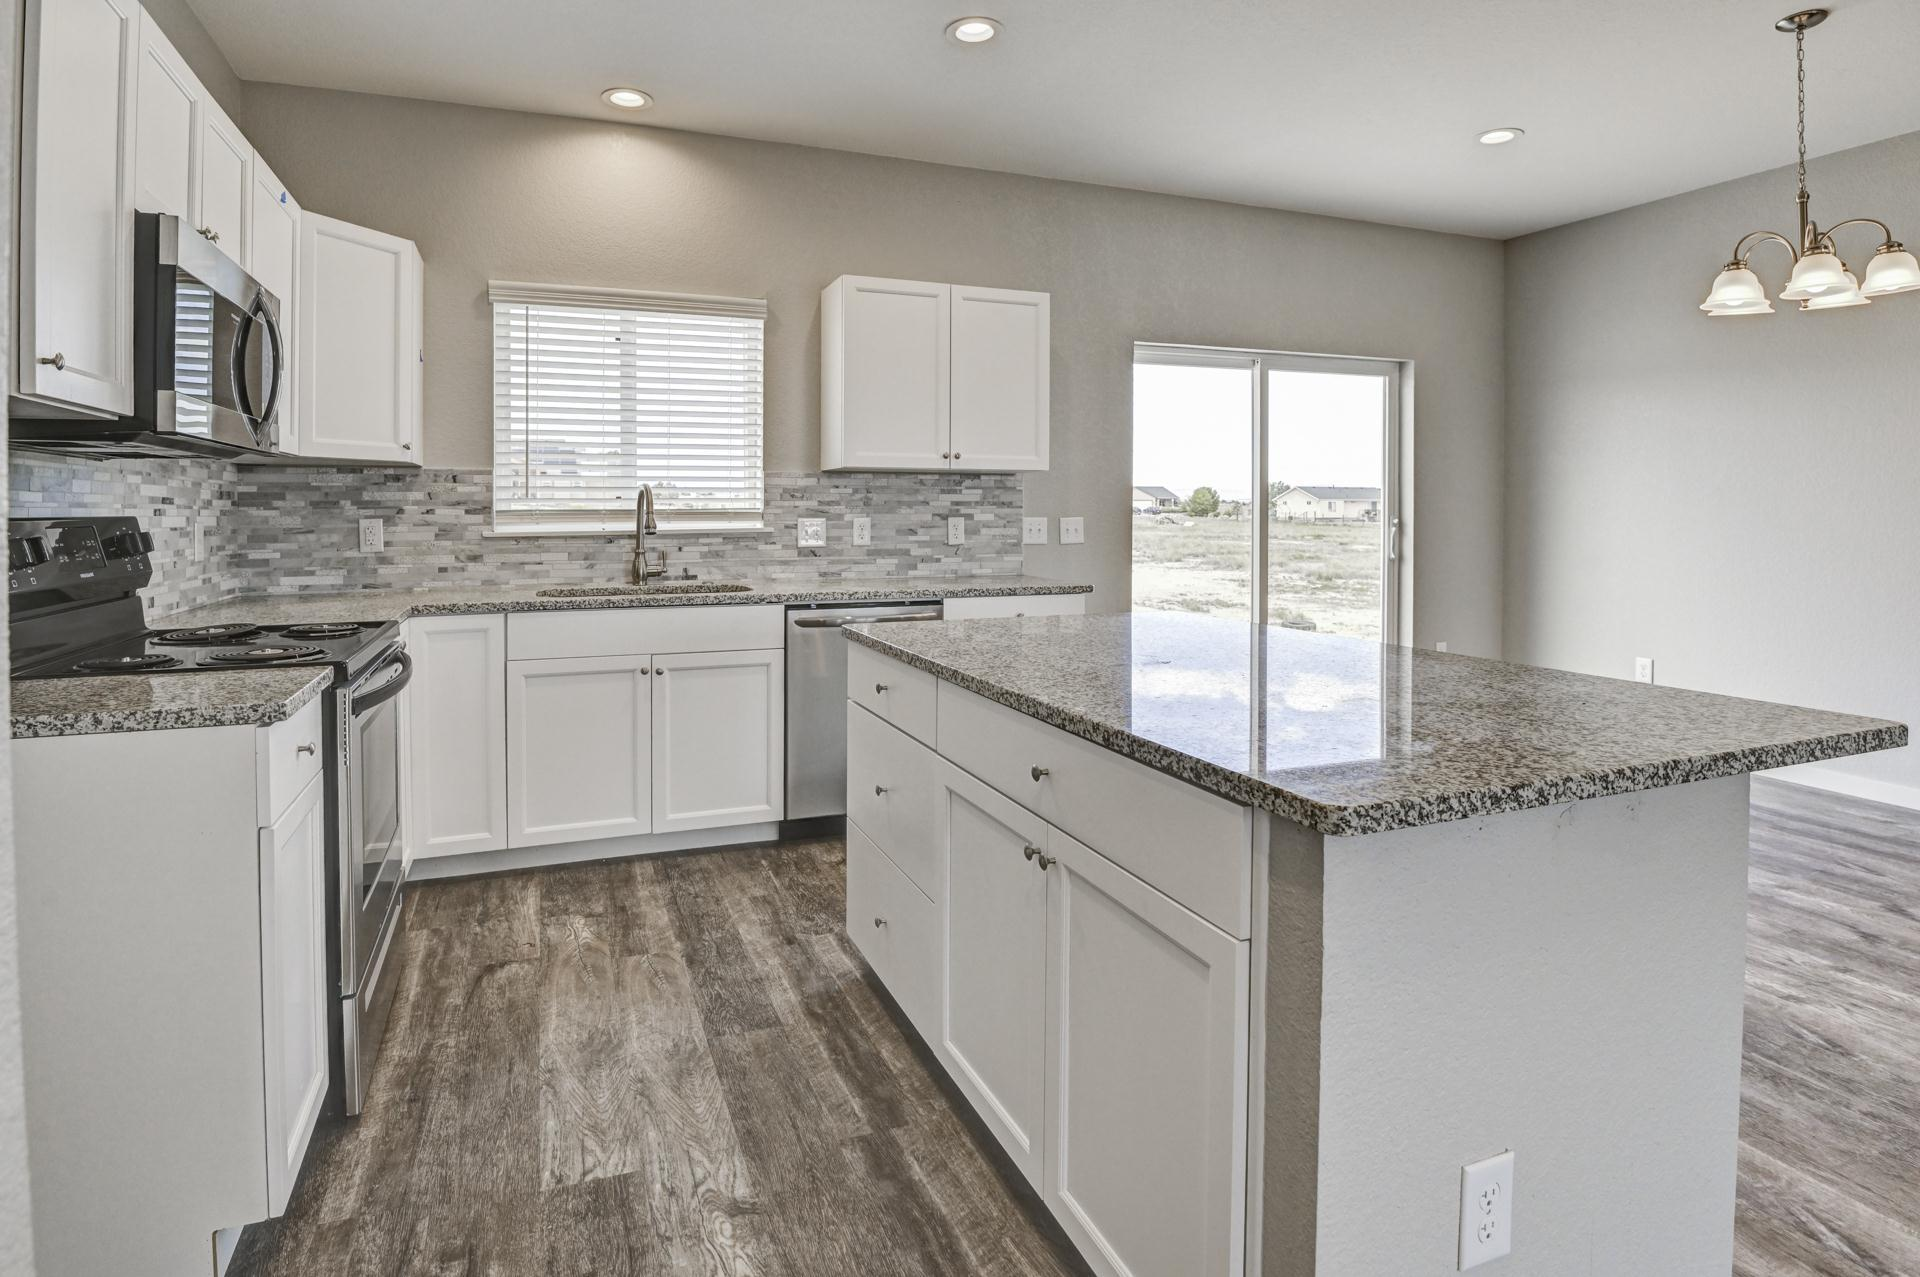 Kitchen featured in the Harmony By Westover Homes in Pueblo, CO